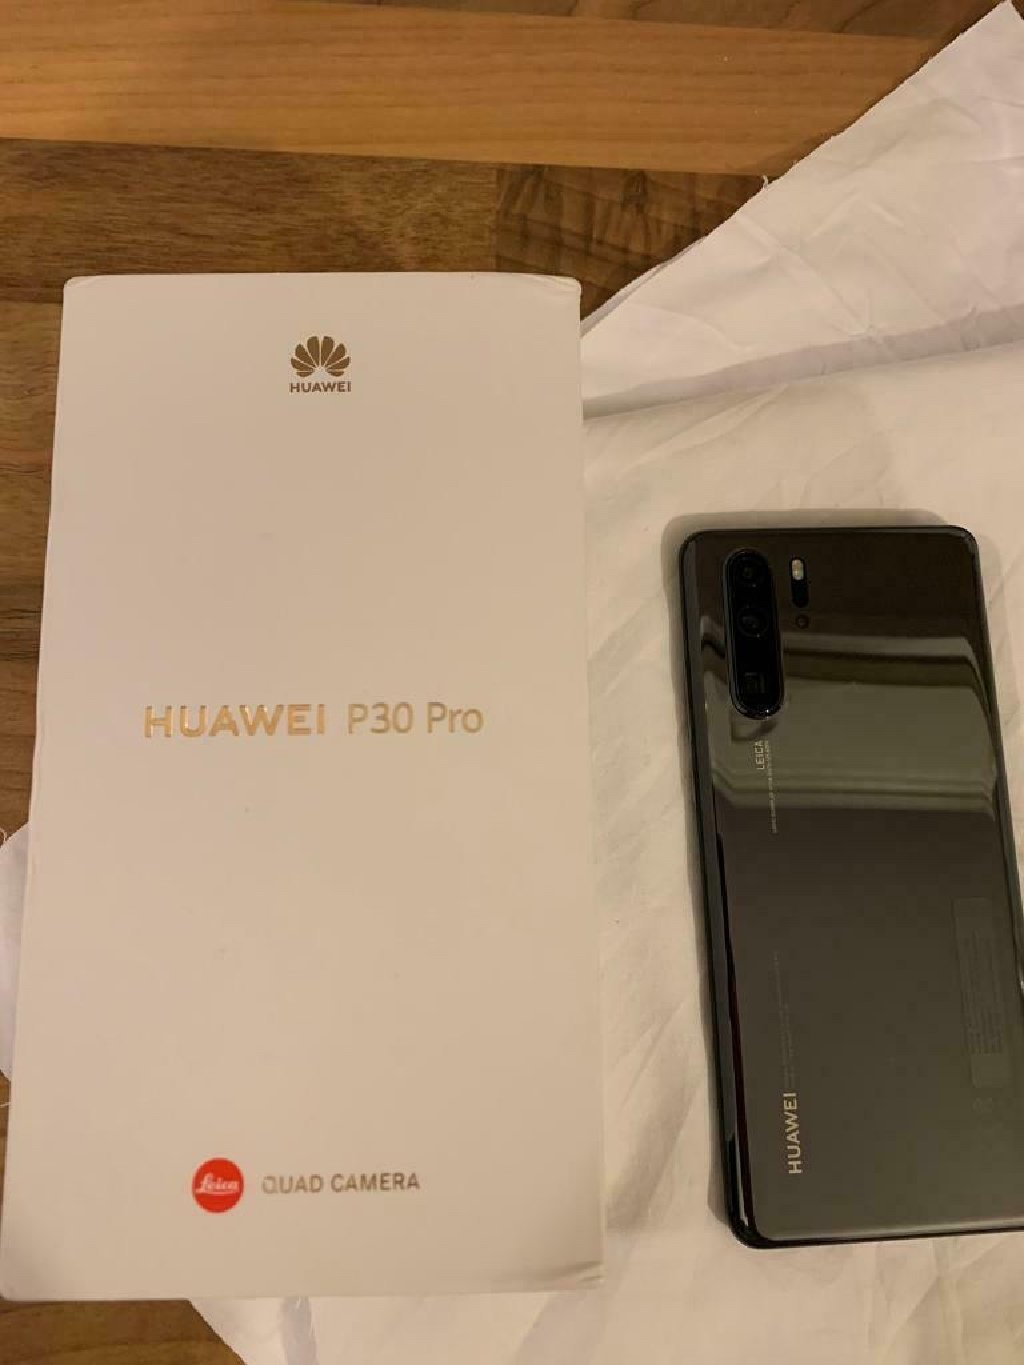 Huawei p30 pro   With free huawei iWatch gts  ( factory unlocked )